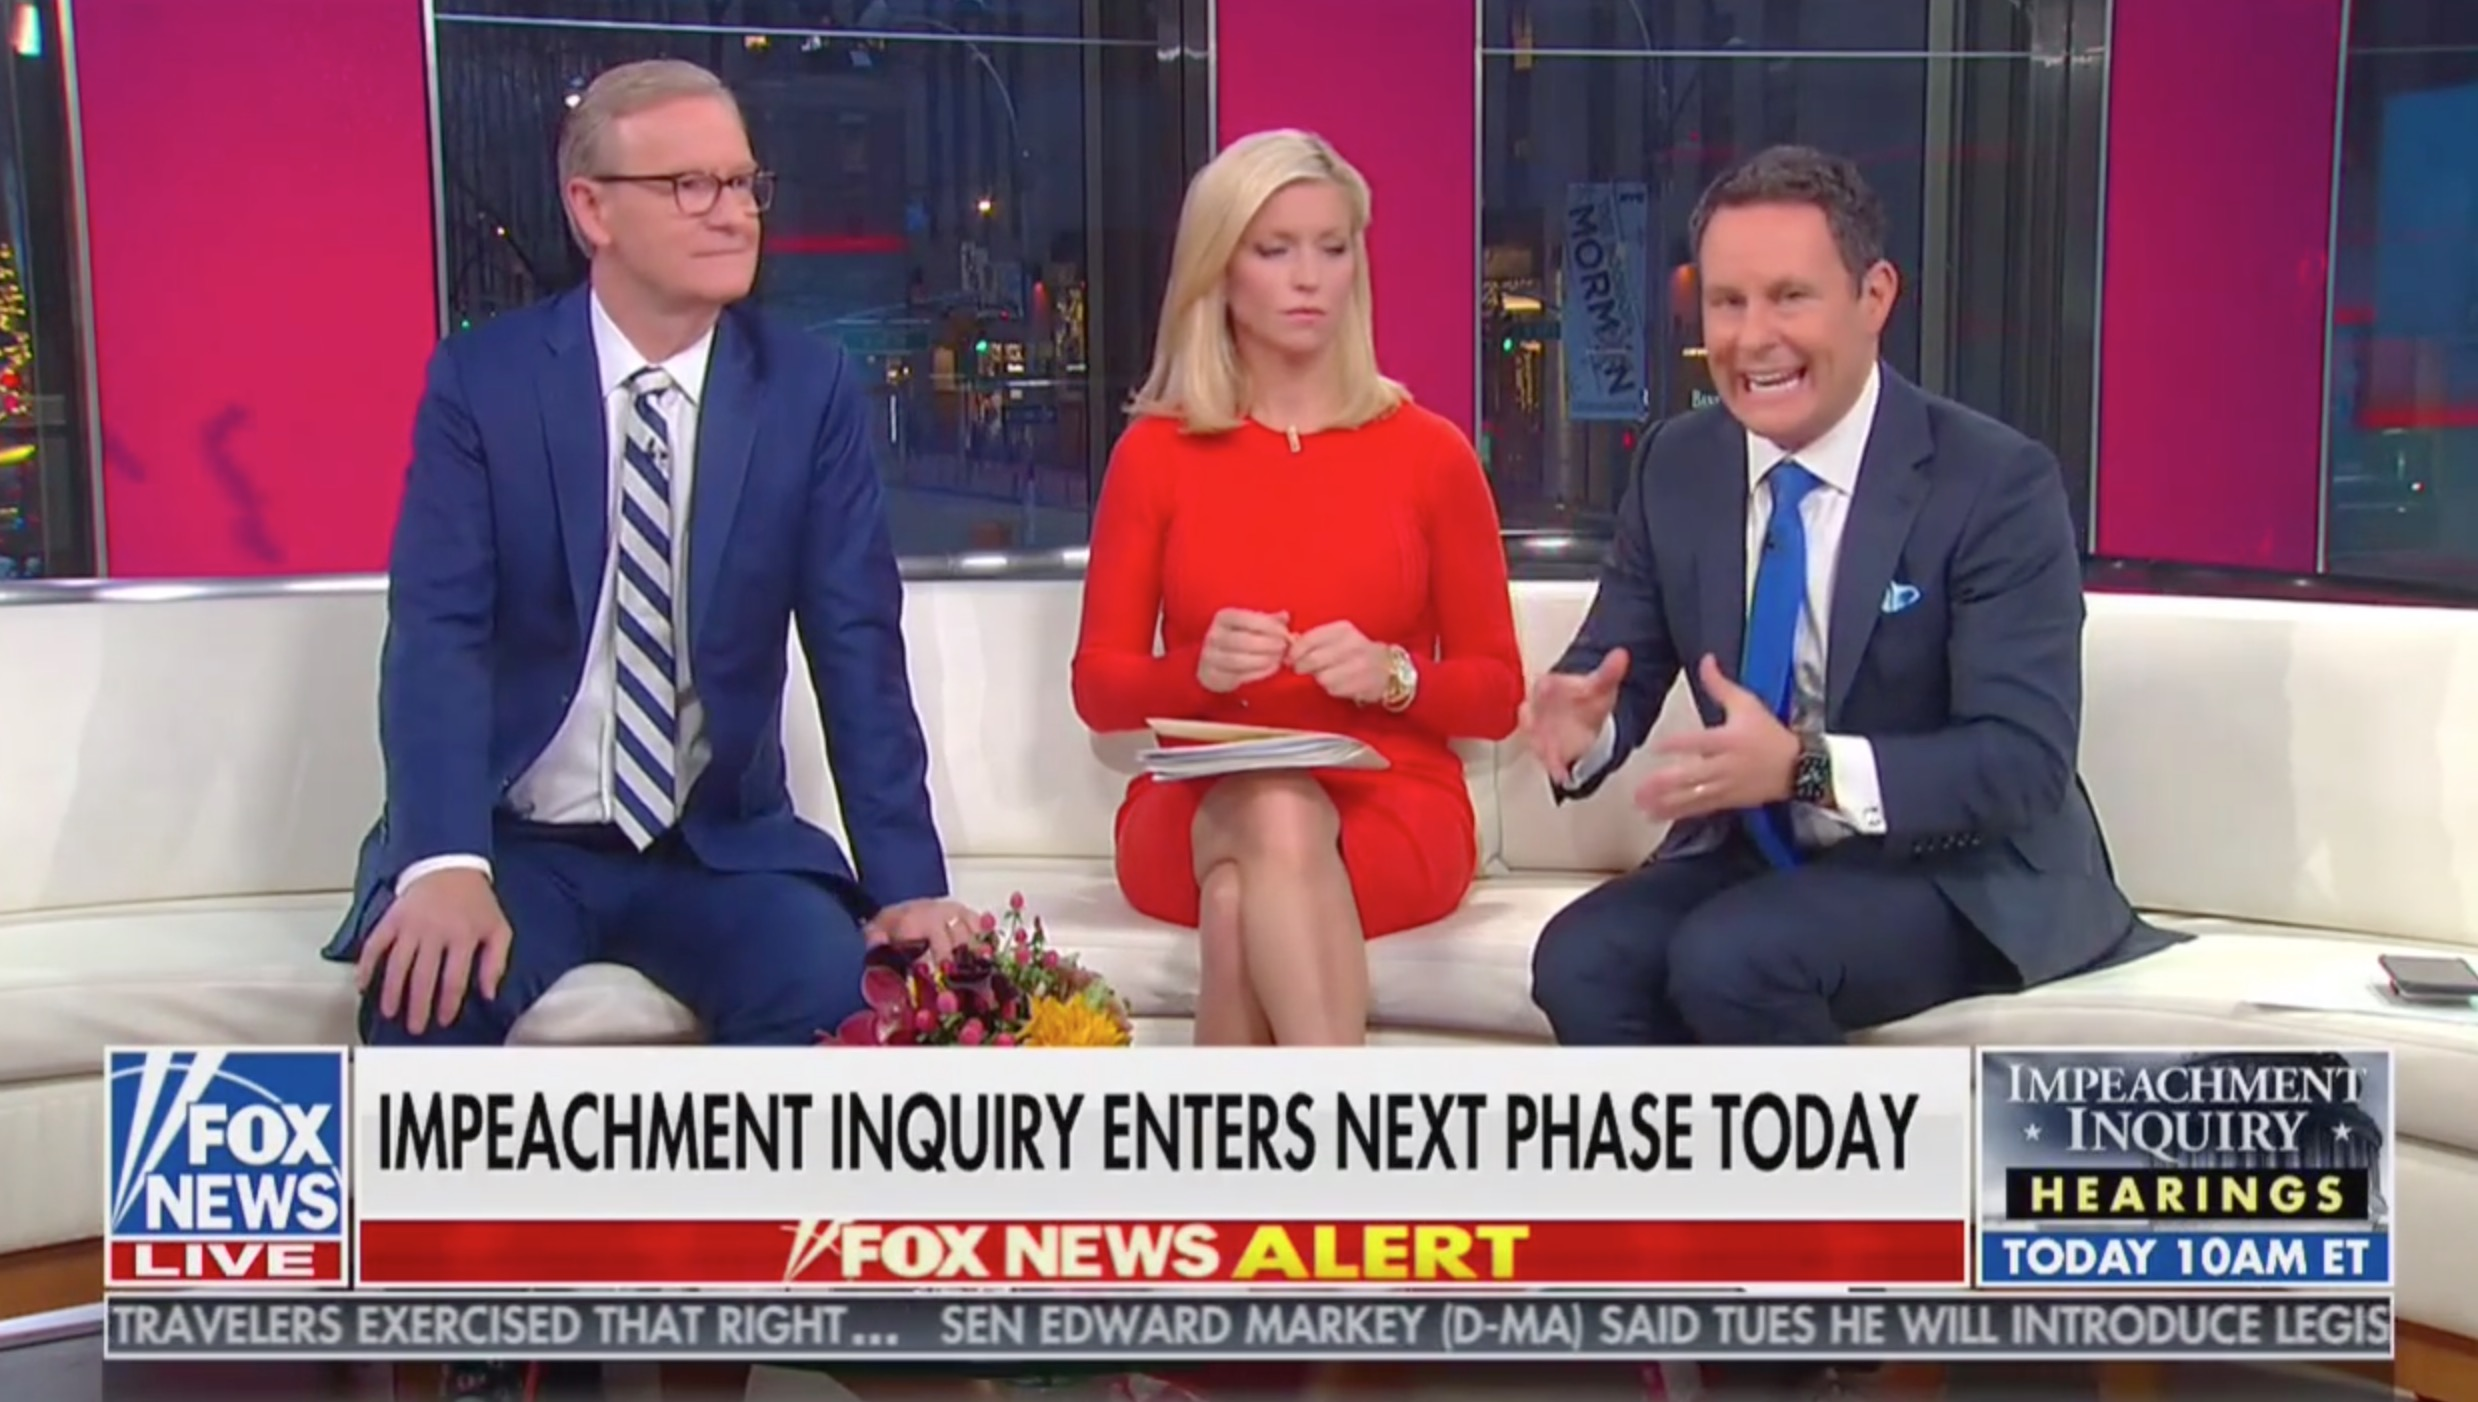 'Overstating': Brian Kilmeade Rejects Trump's Claim That Schiff Lied About Ukraine Call